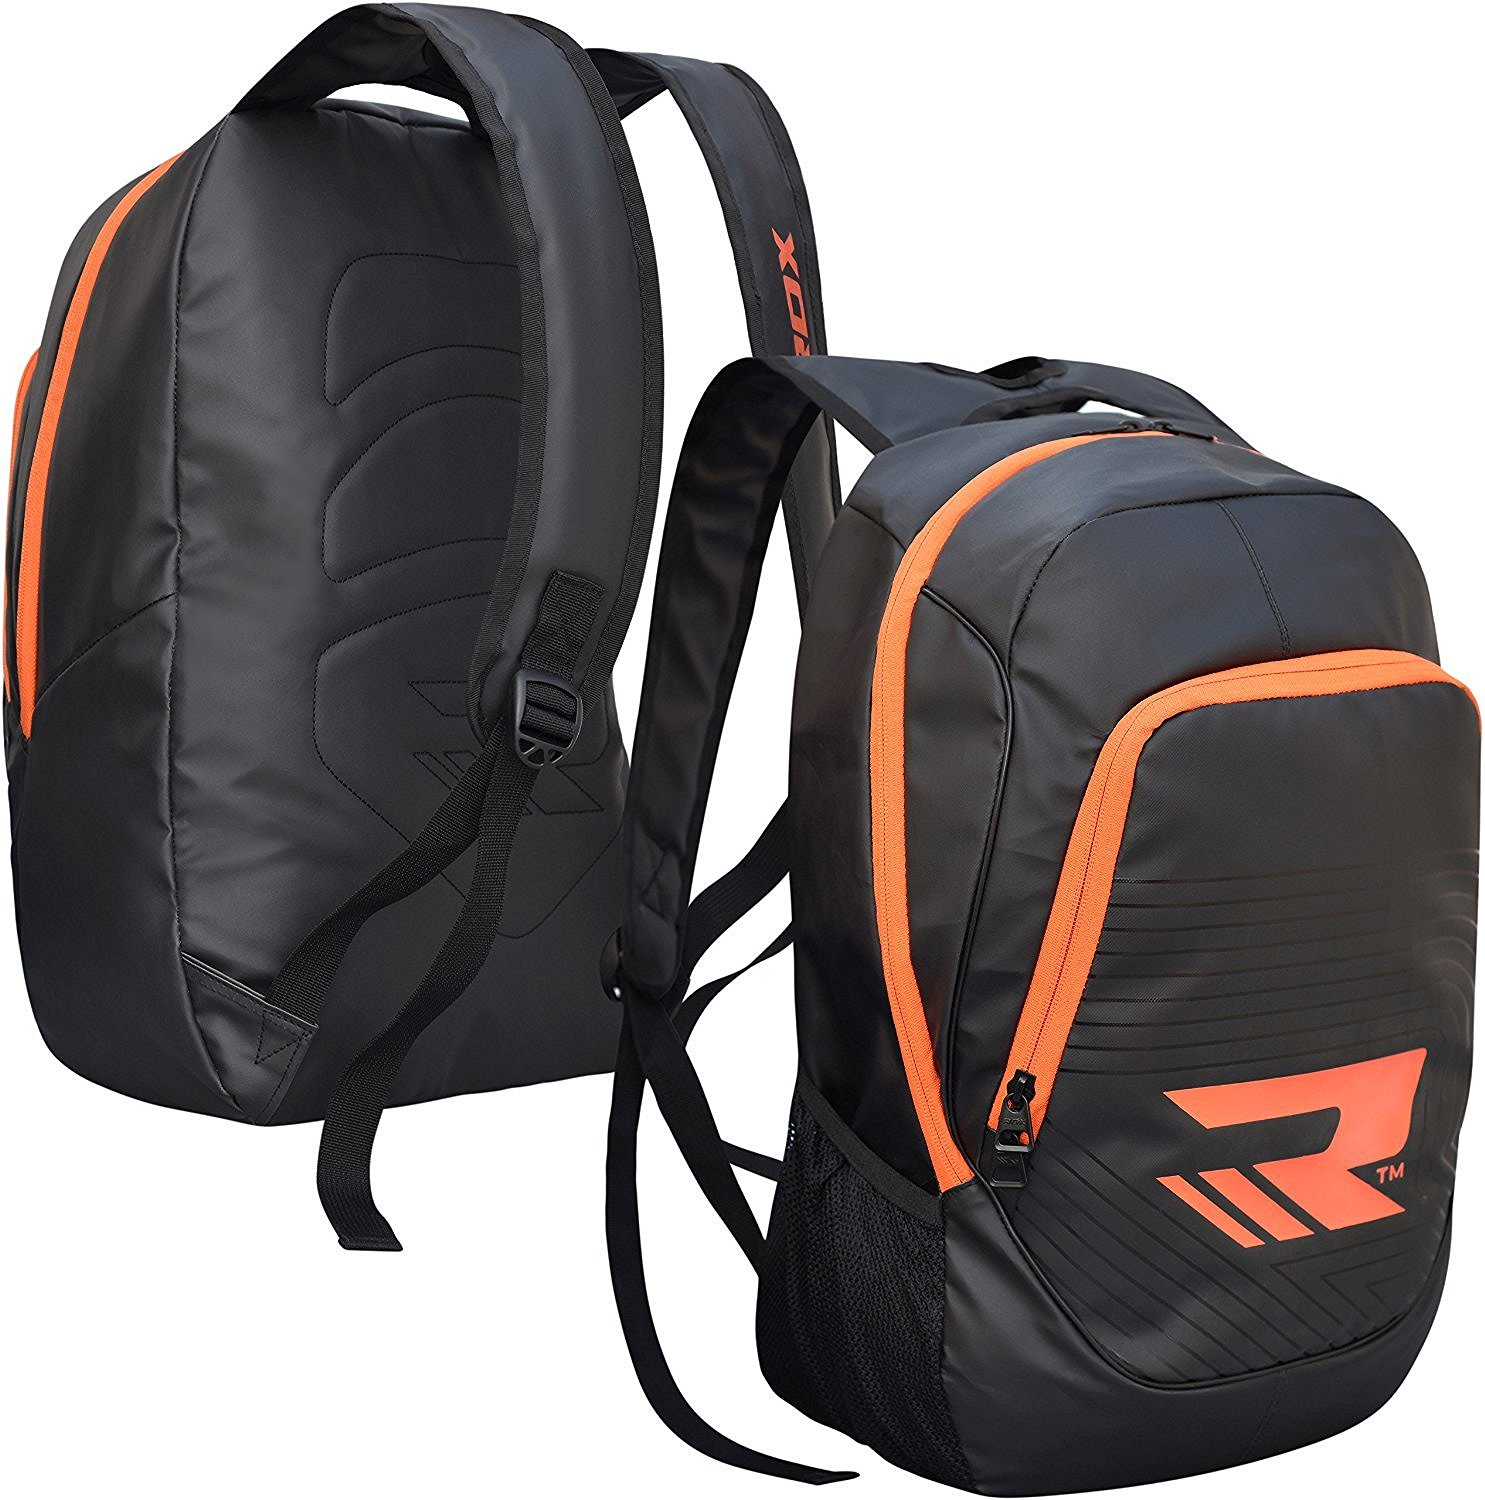 RDX Gym Gear Gymsack Kit Bag Duffle Gymnast Sports Backpack Fitness Sackpack by RDX